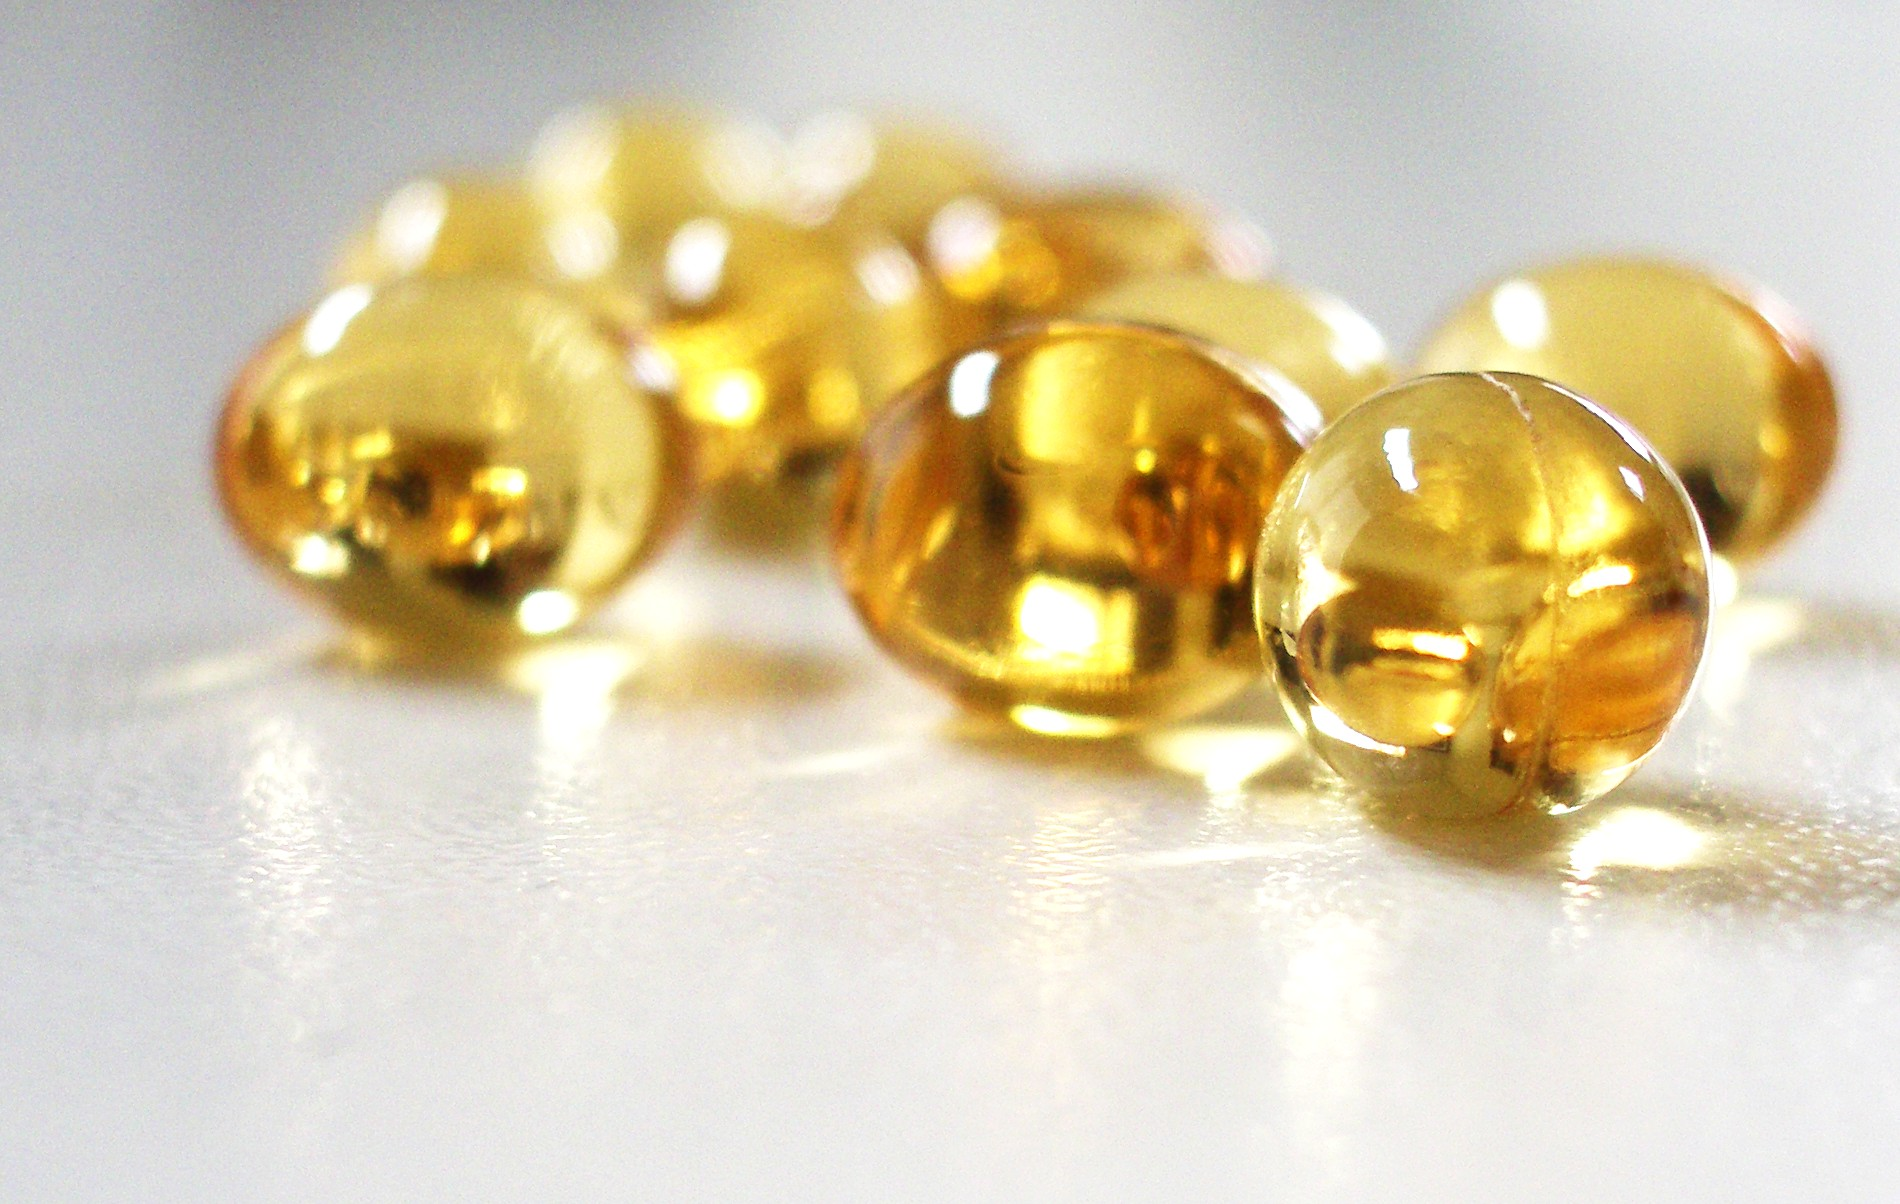 all about vitamin E oil